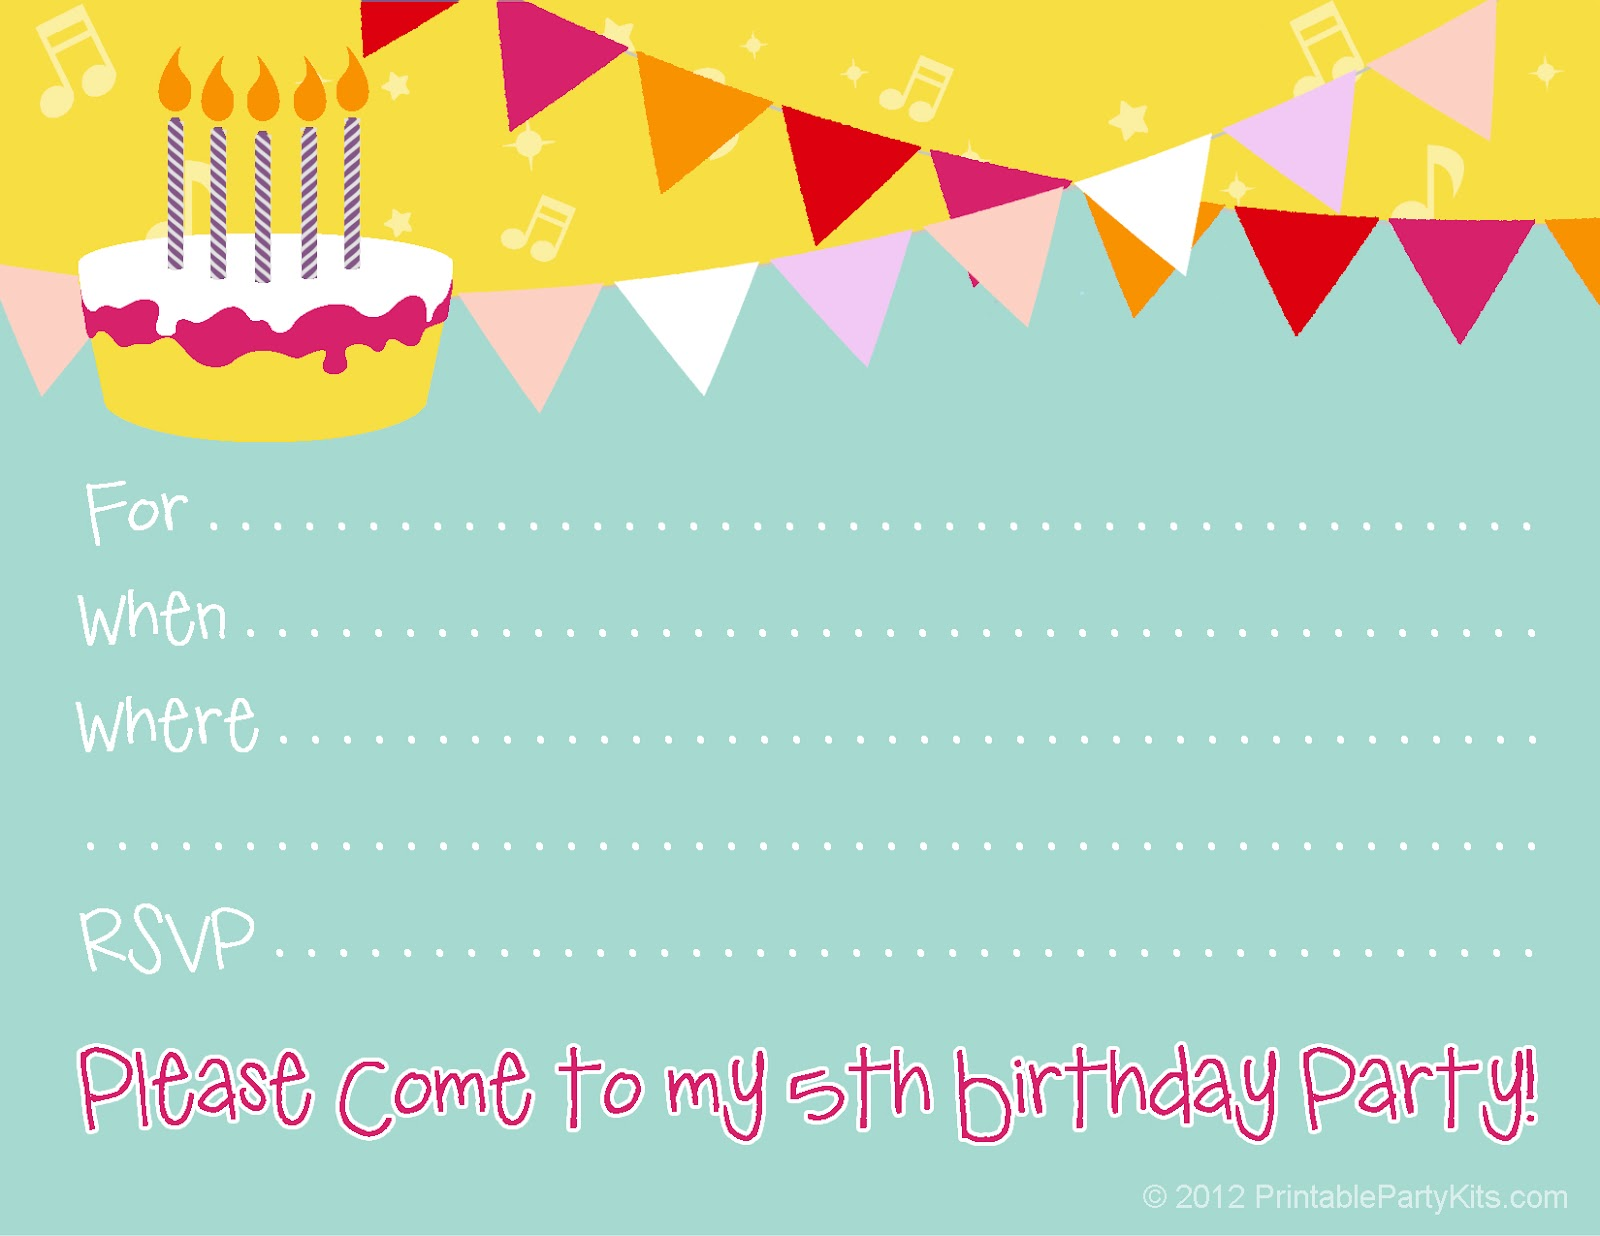 birthday invitation card design template free ; Birthday-Party-Invitation-Templates-Free-Download-to-get-ideas-how-to-make-your-own-birthday-Invitation-design-1